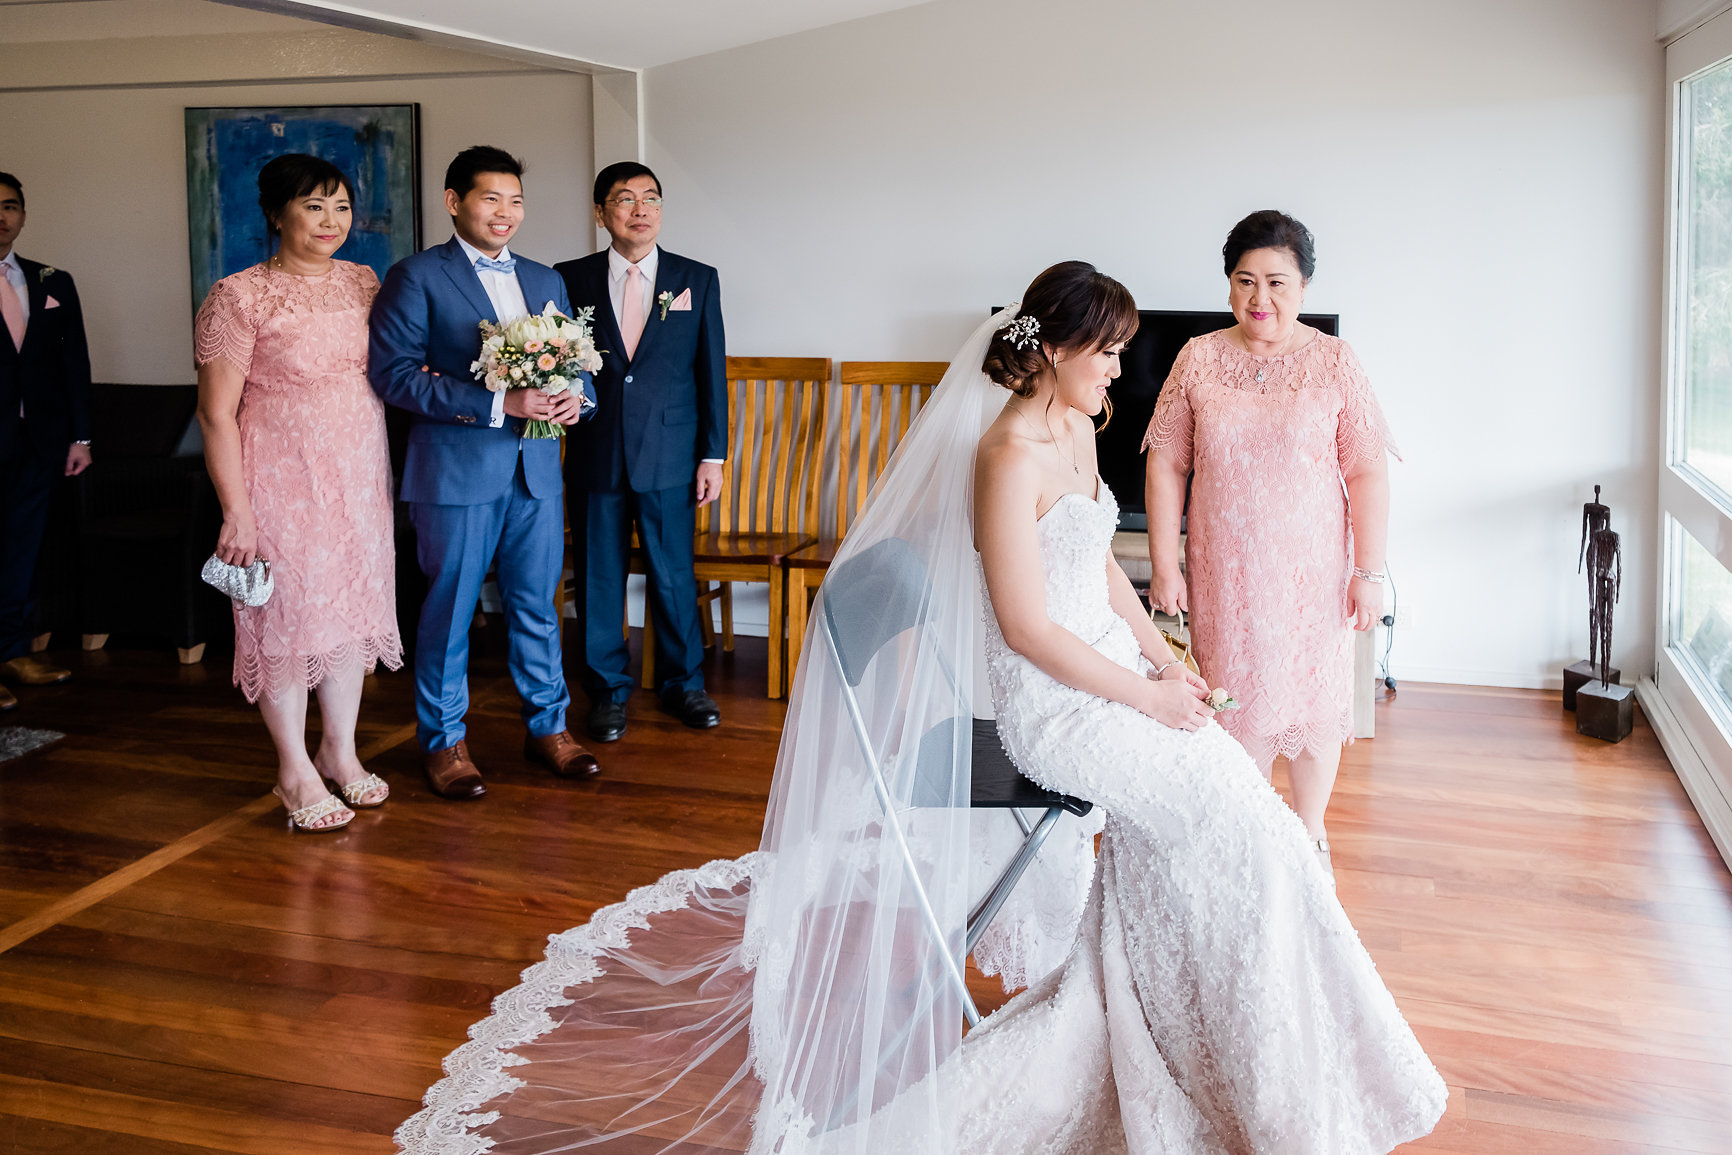 Sydney Wedding Photography Ironbark Hill Brewhouse  - 06.jpg